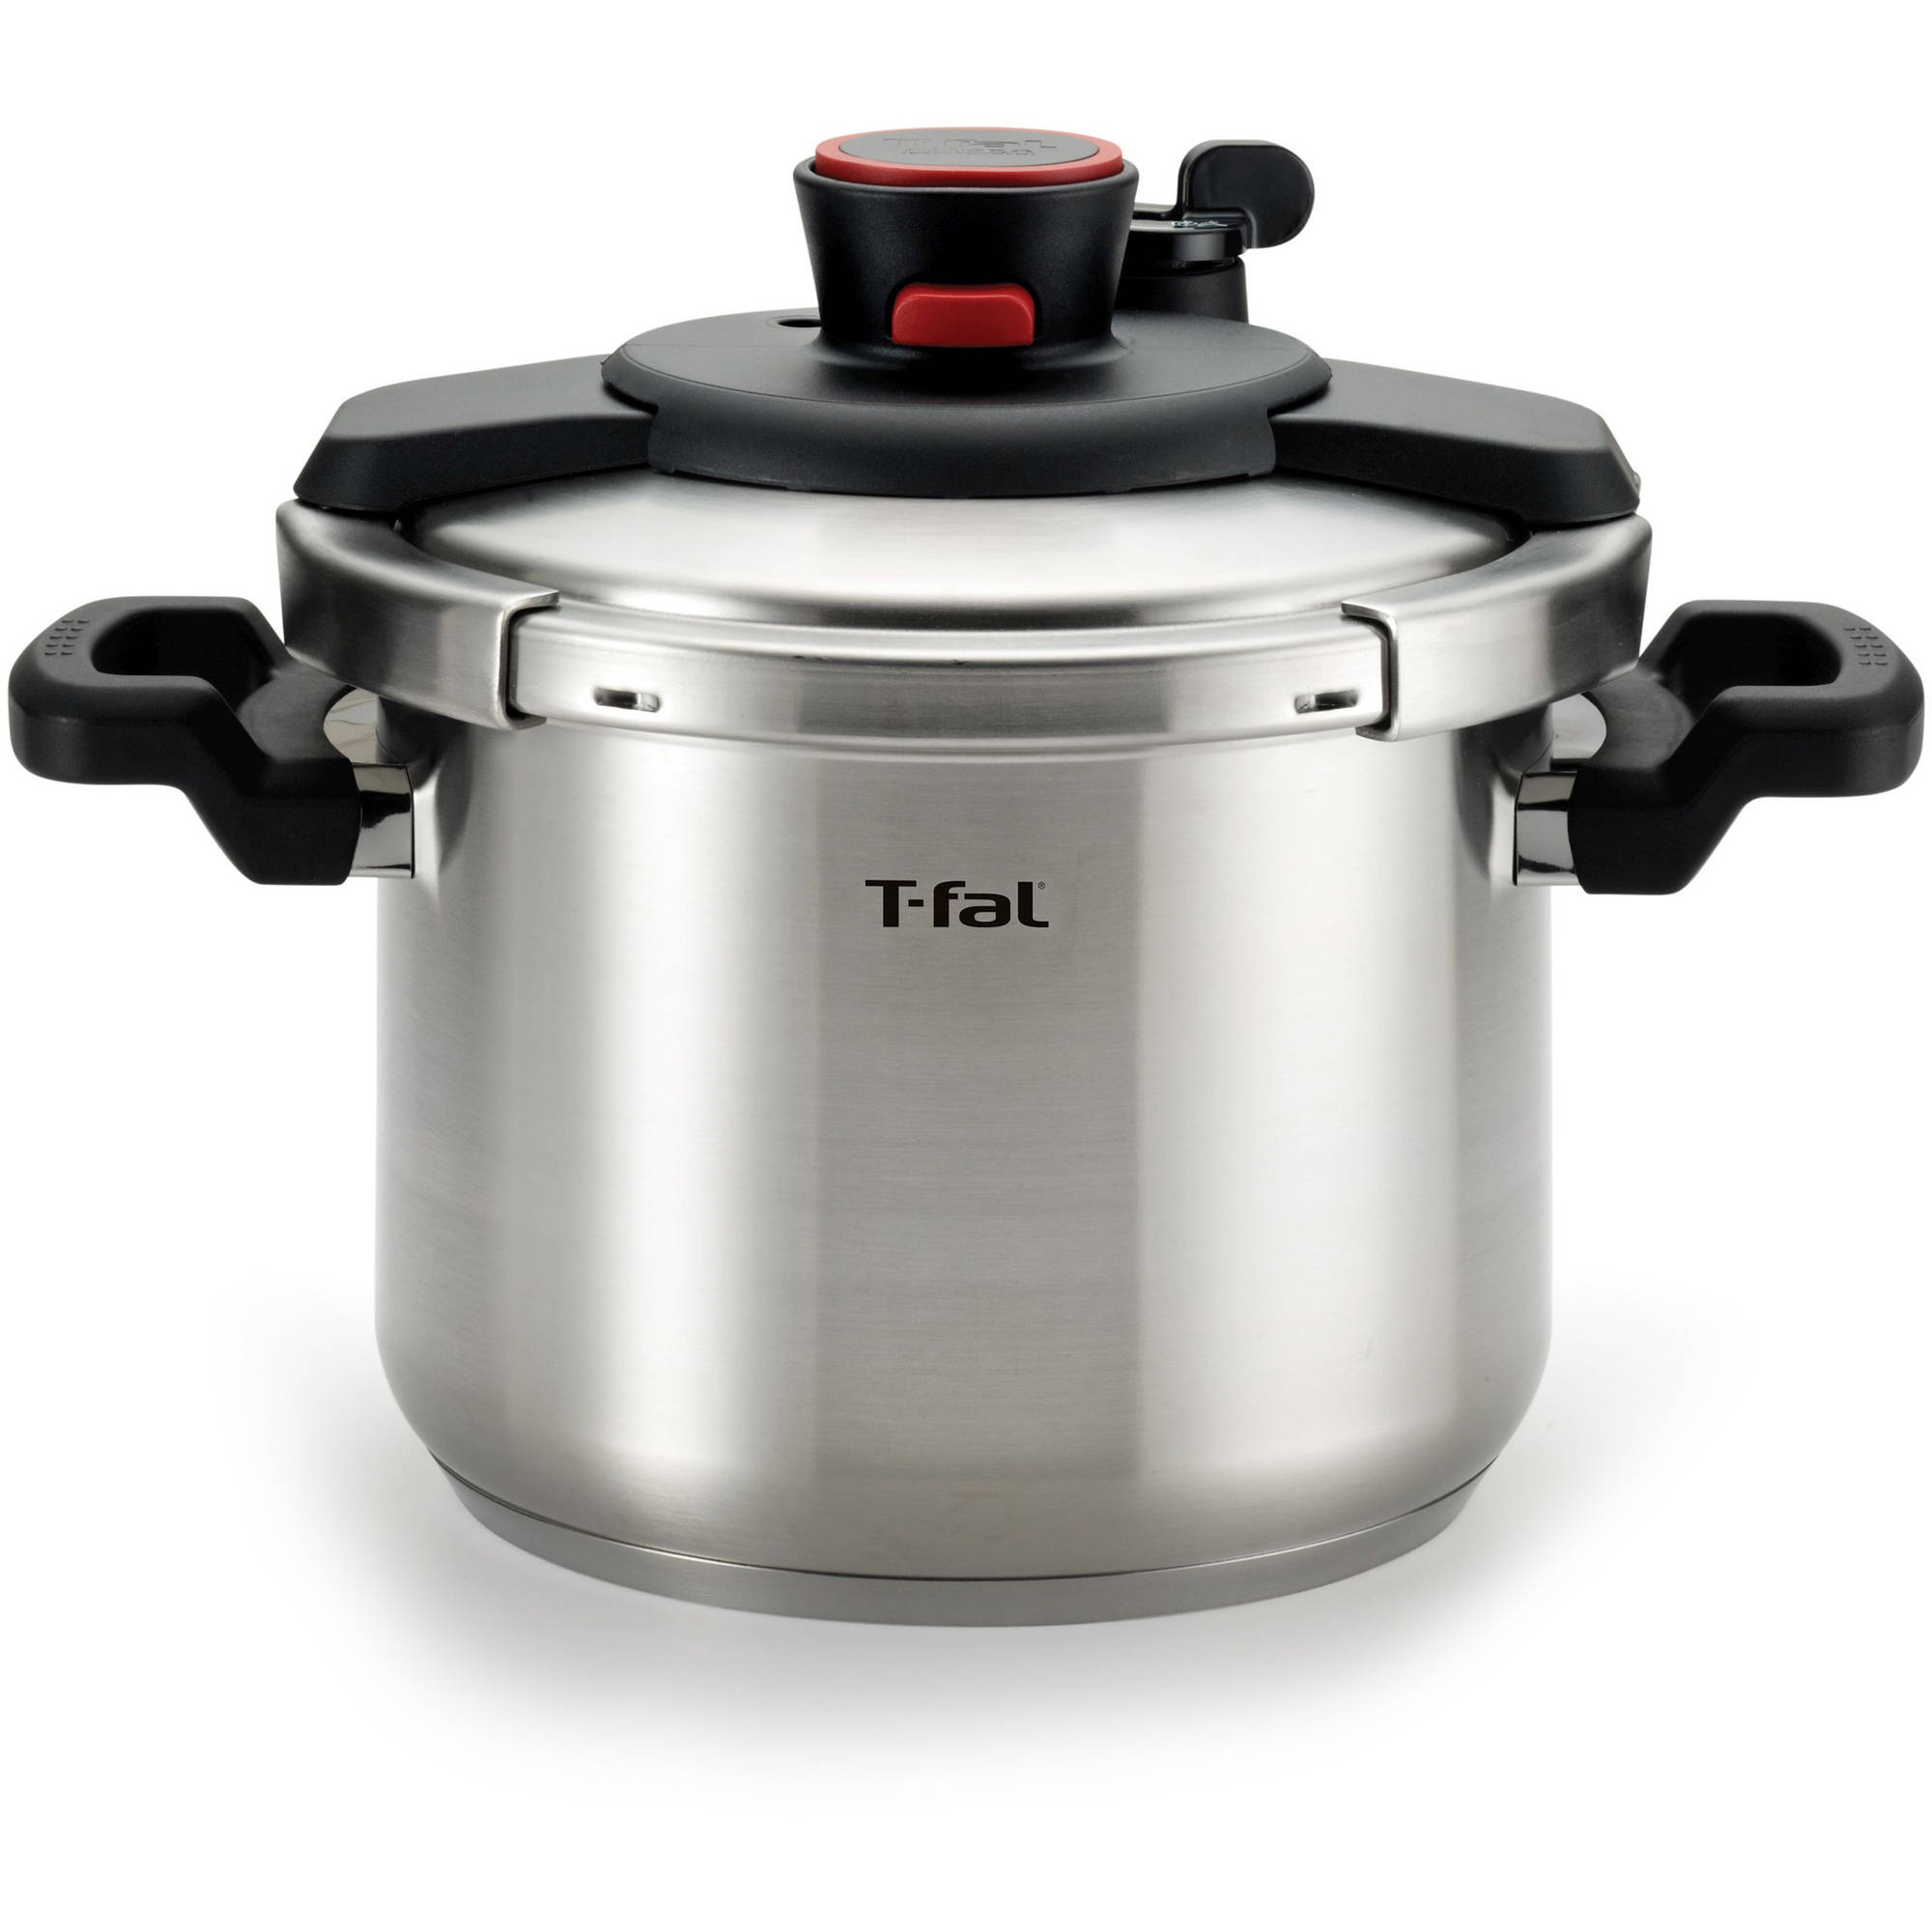 T Fal Clipso Stainless Steel 6 3 Qt Pressure Cooker